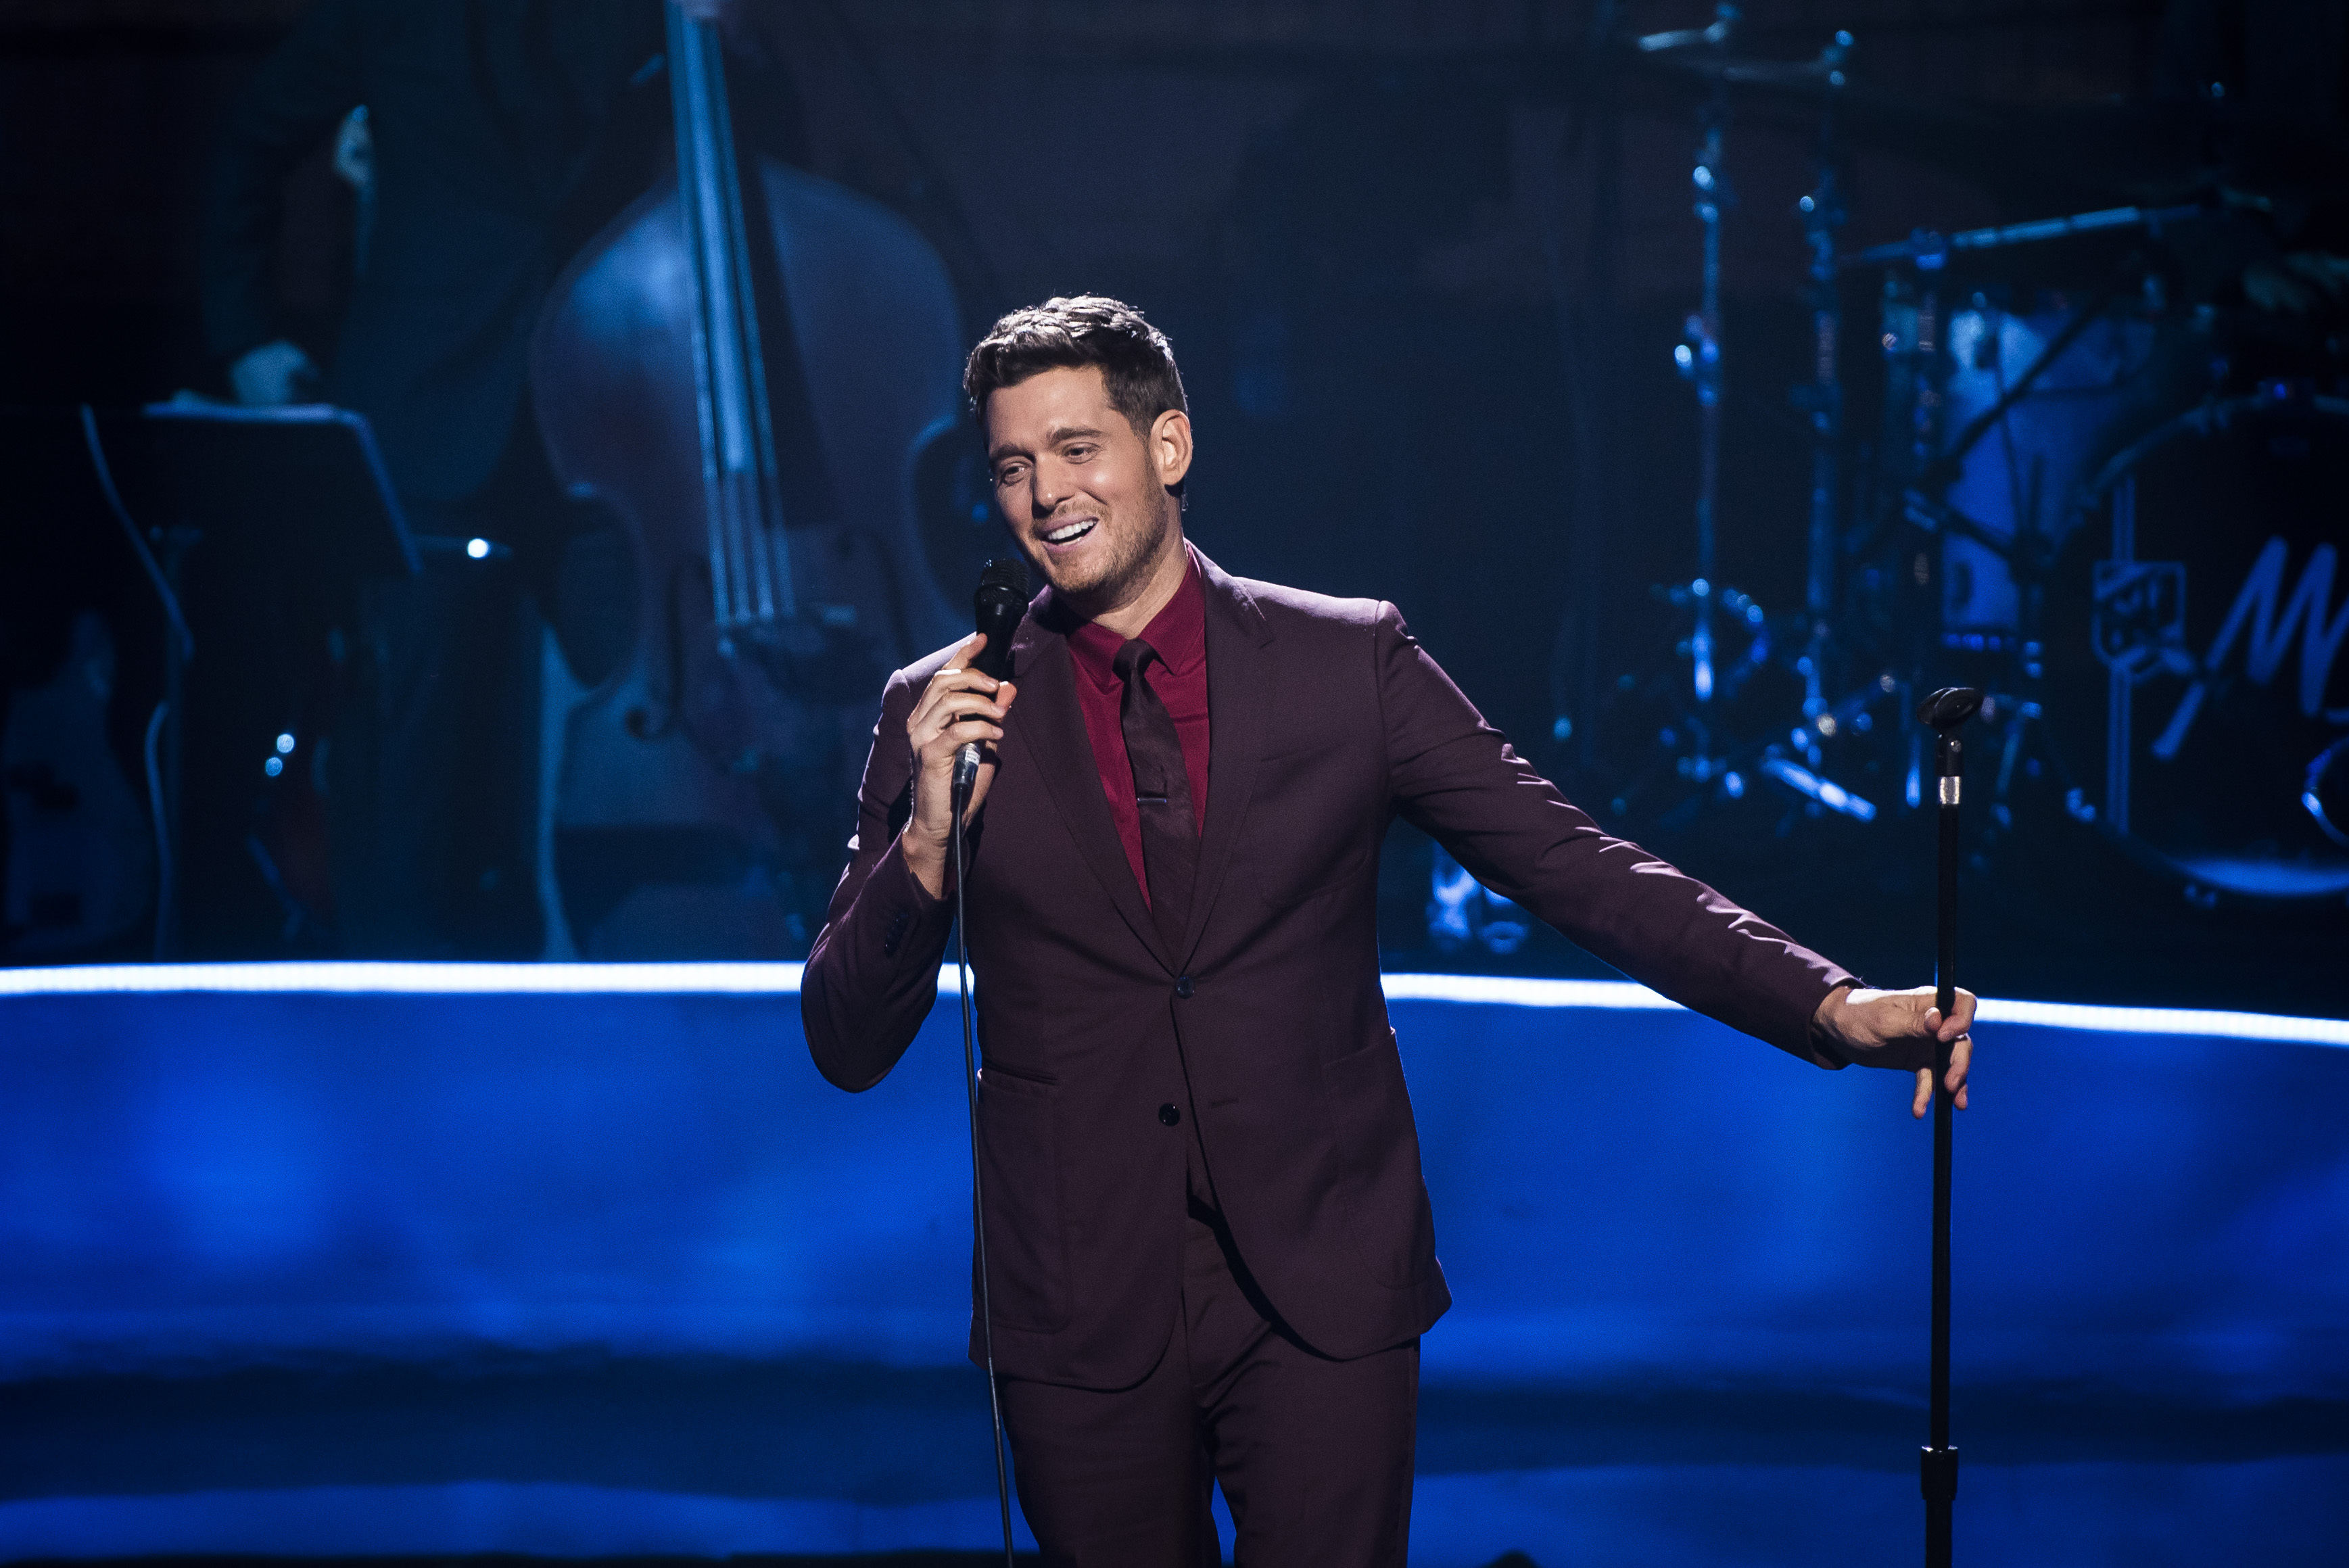 Michael Bublé announces 'retirement' from music